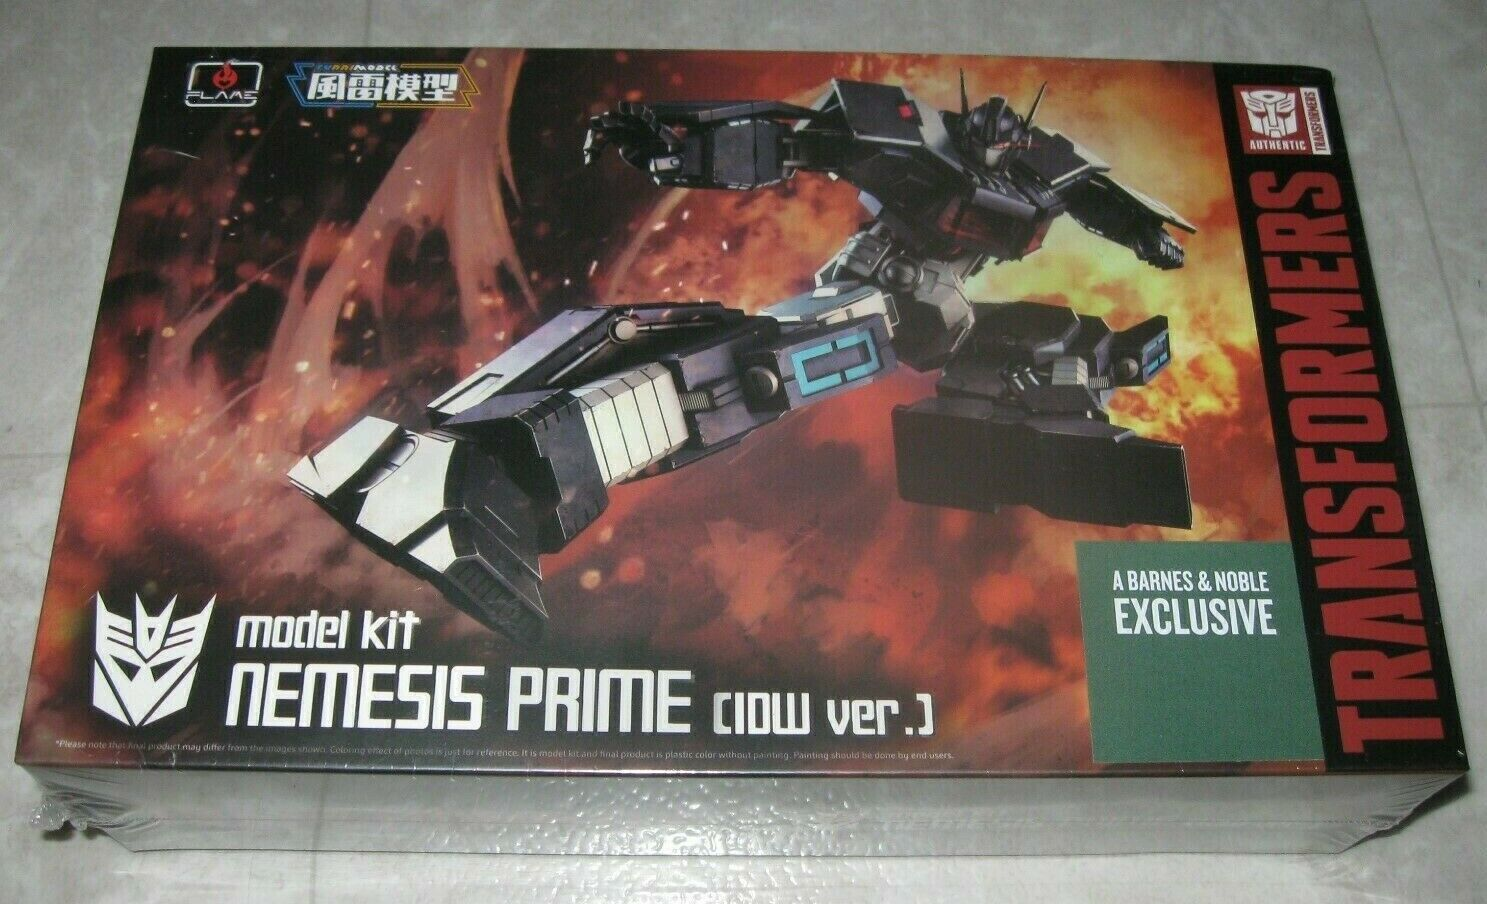 2019 Transformers Barnes and Noble - Nemesis Prime IDW modell Kit